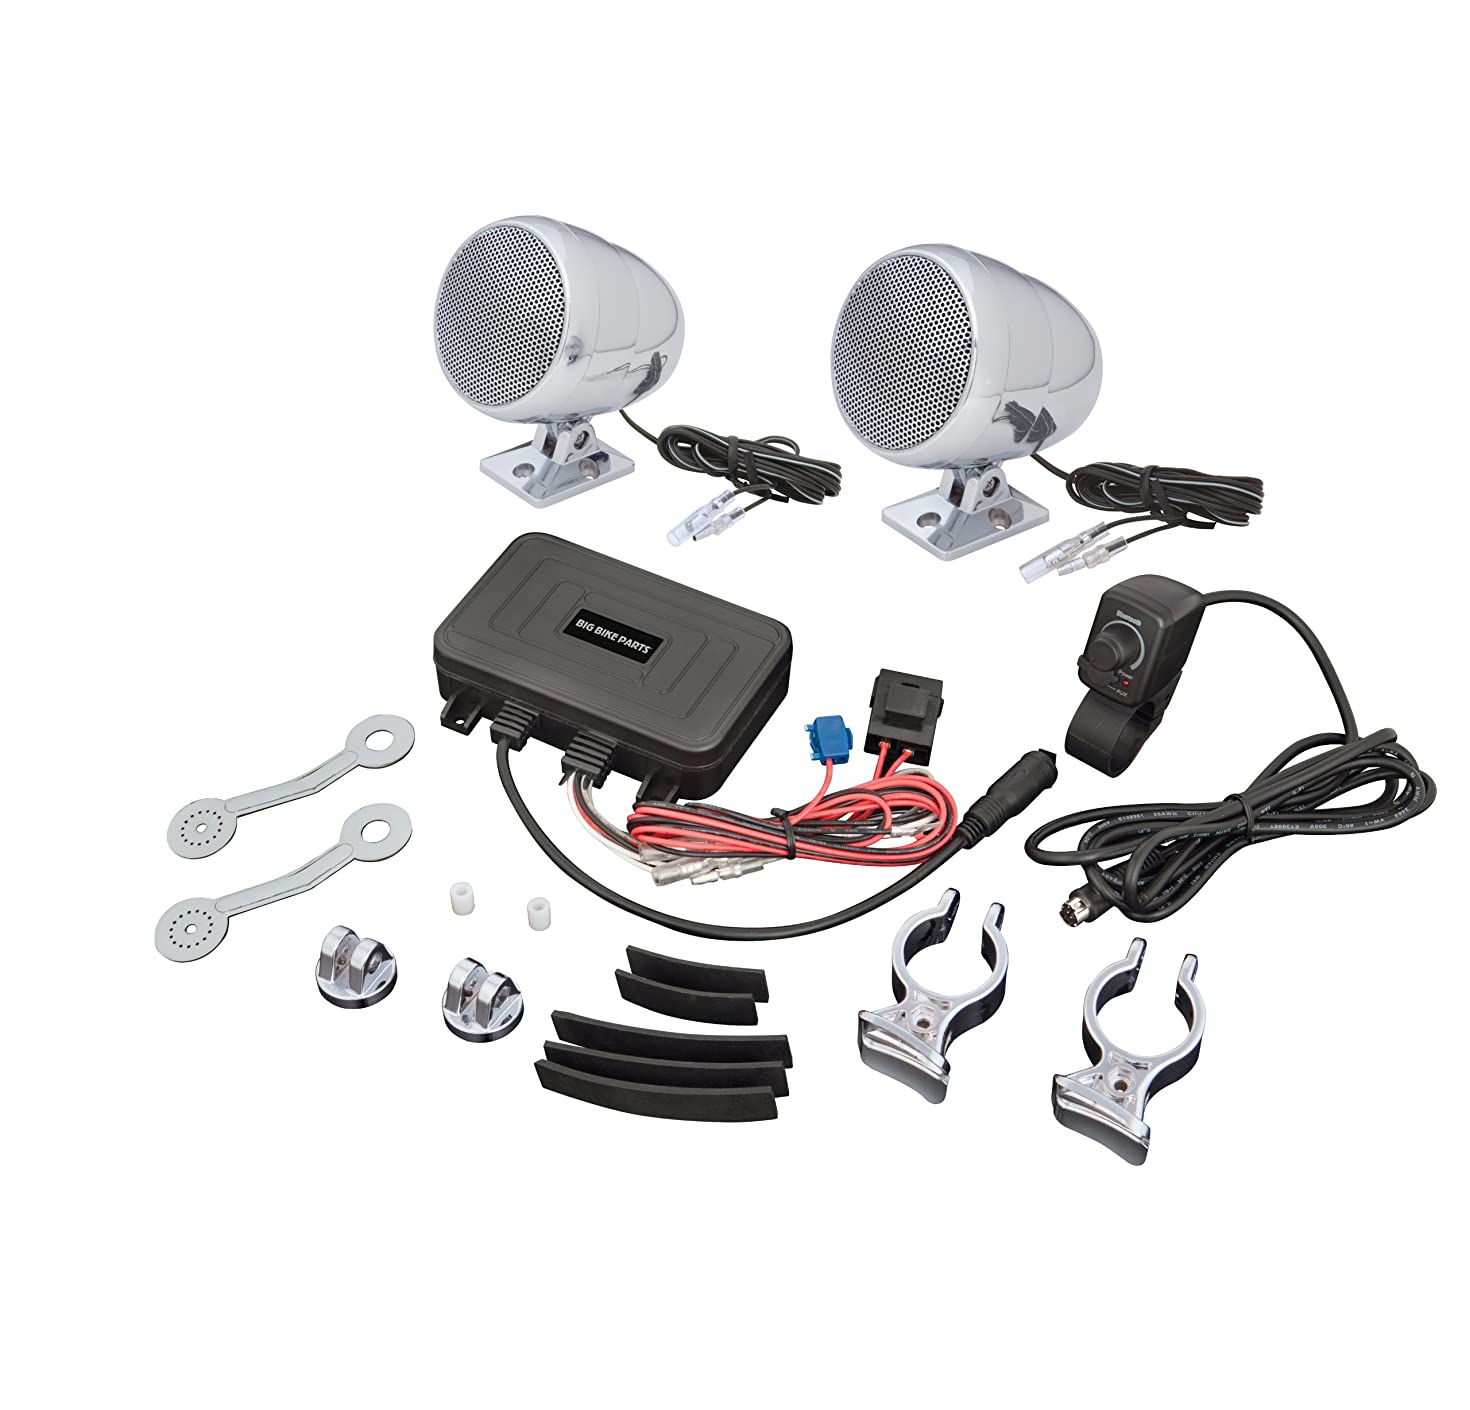 Big Bike Parts Waterproof Bluetooth Sound System Complete with Speakers